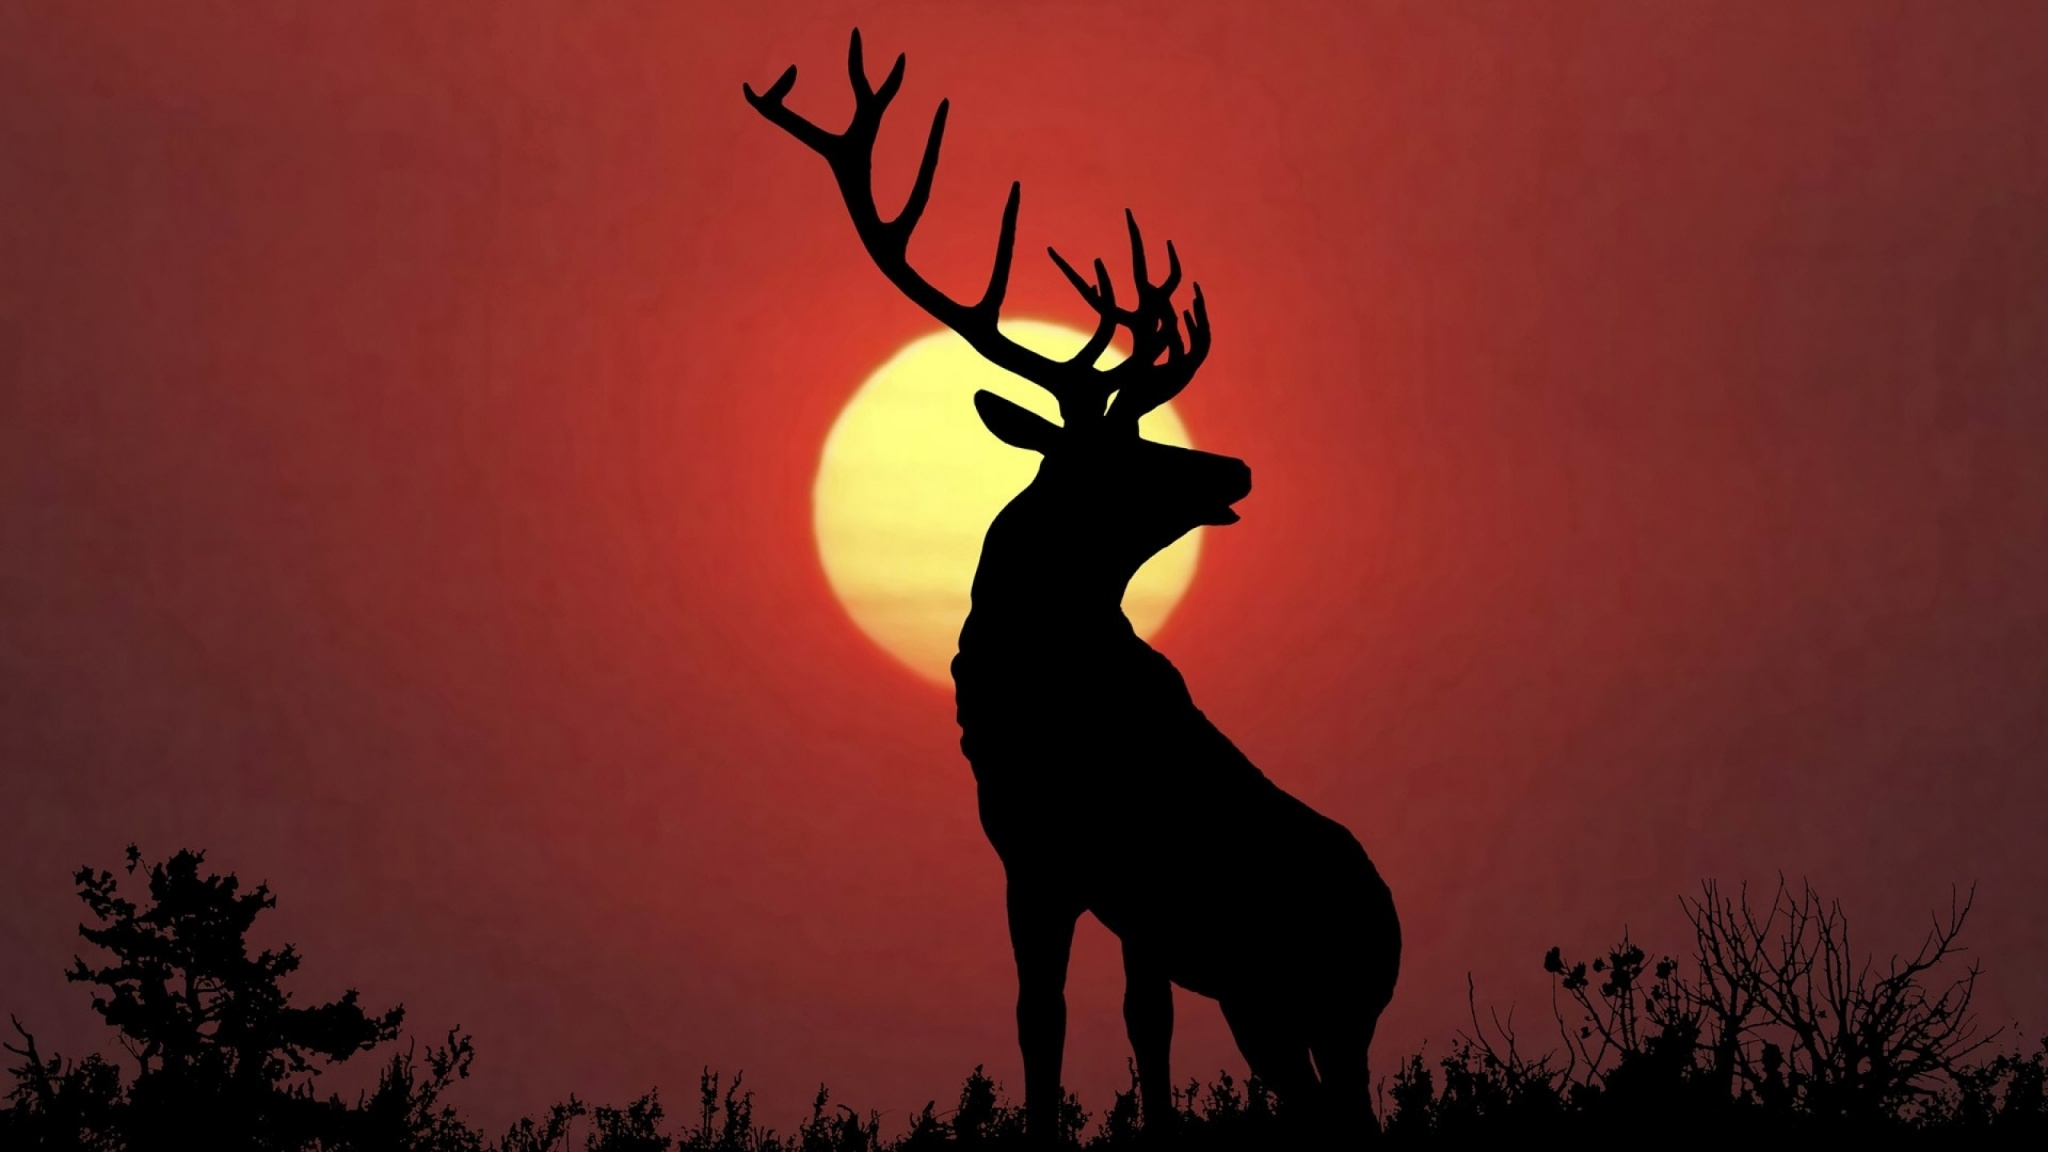 Deer at sunset 2048 x 1152 download close